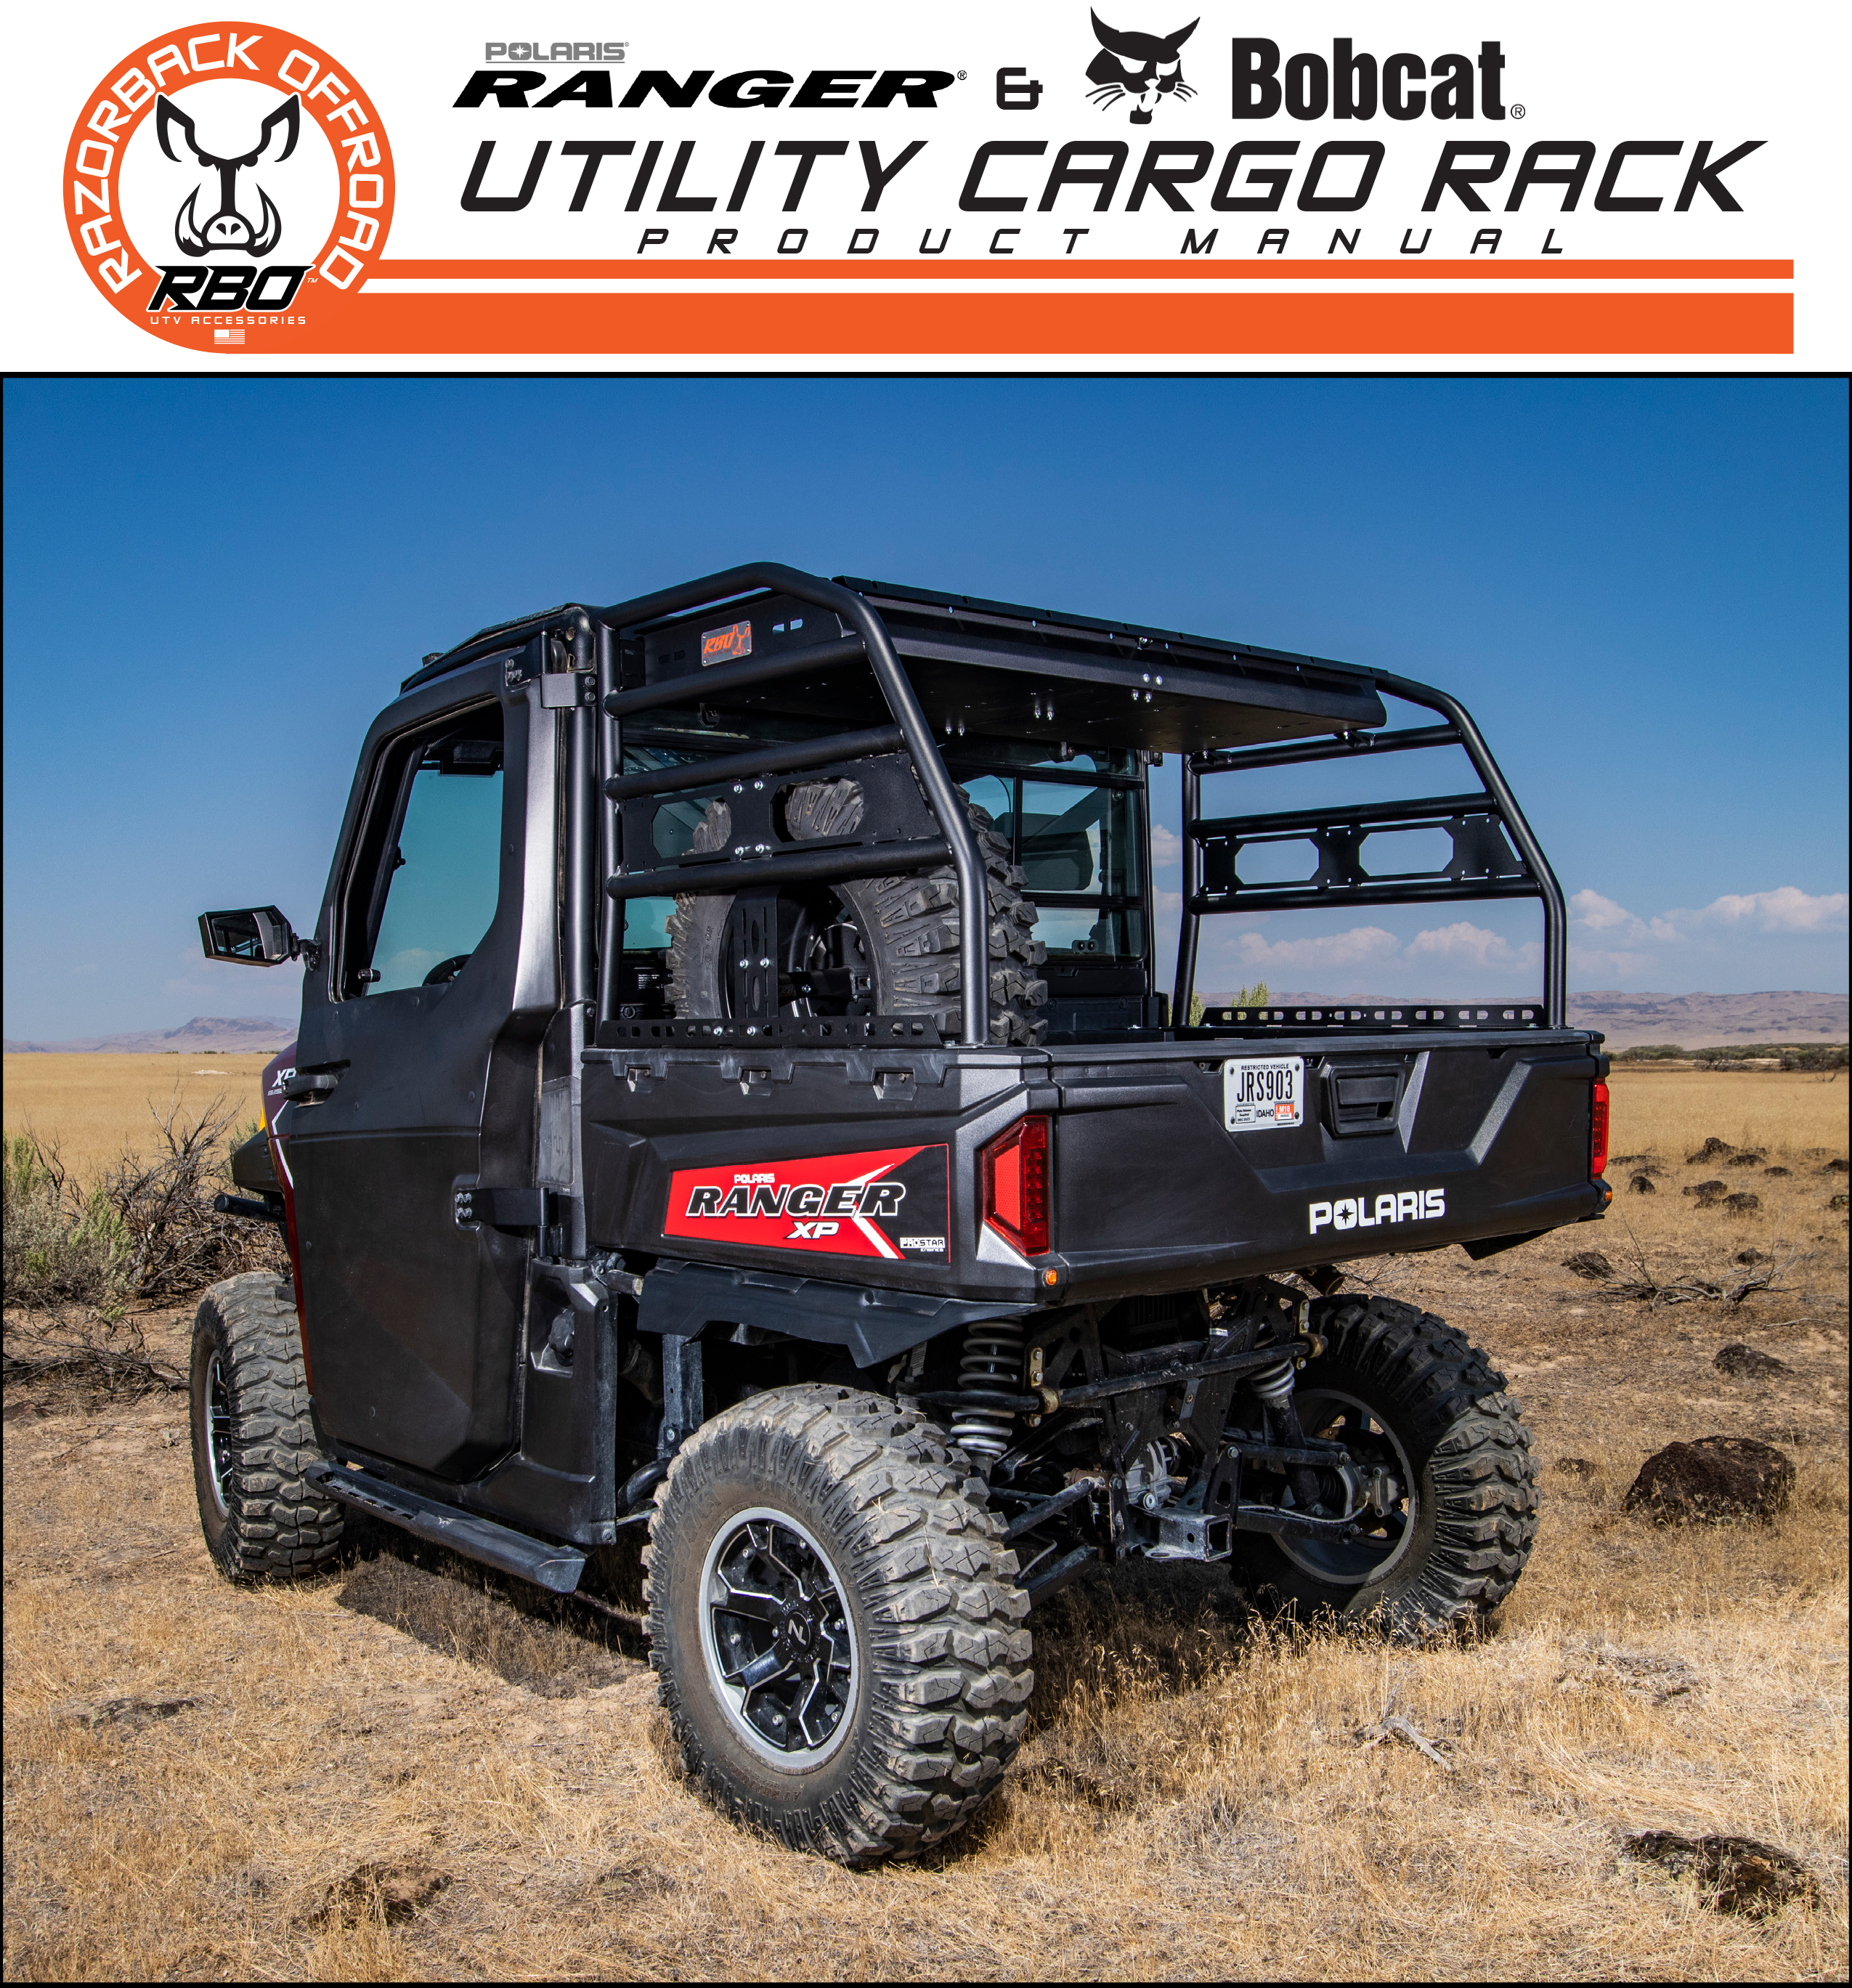 RBO Polaris Ranger and Bobcat Utility Cargo Rack